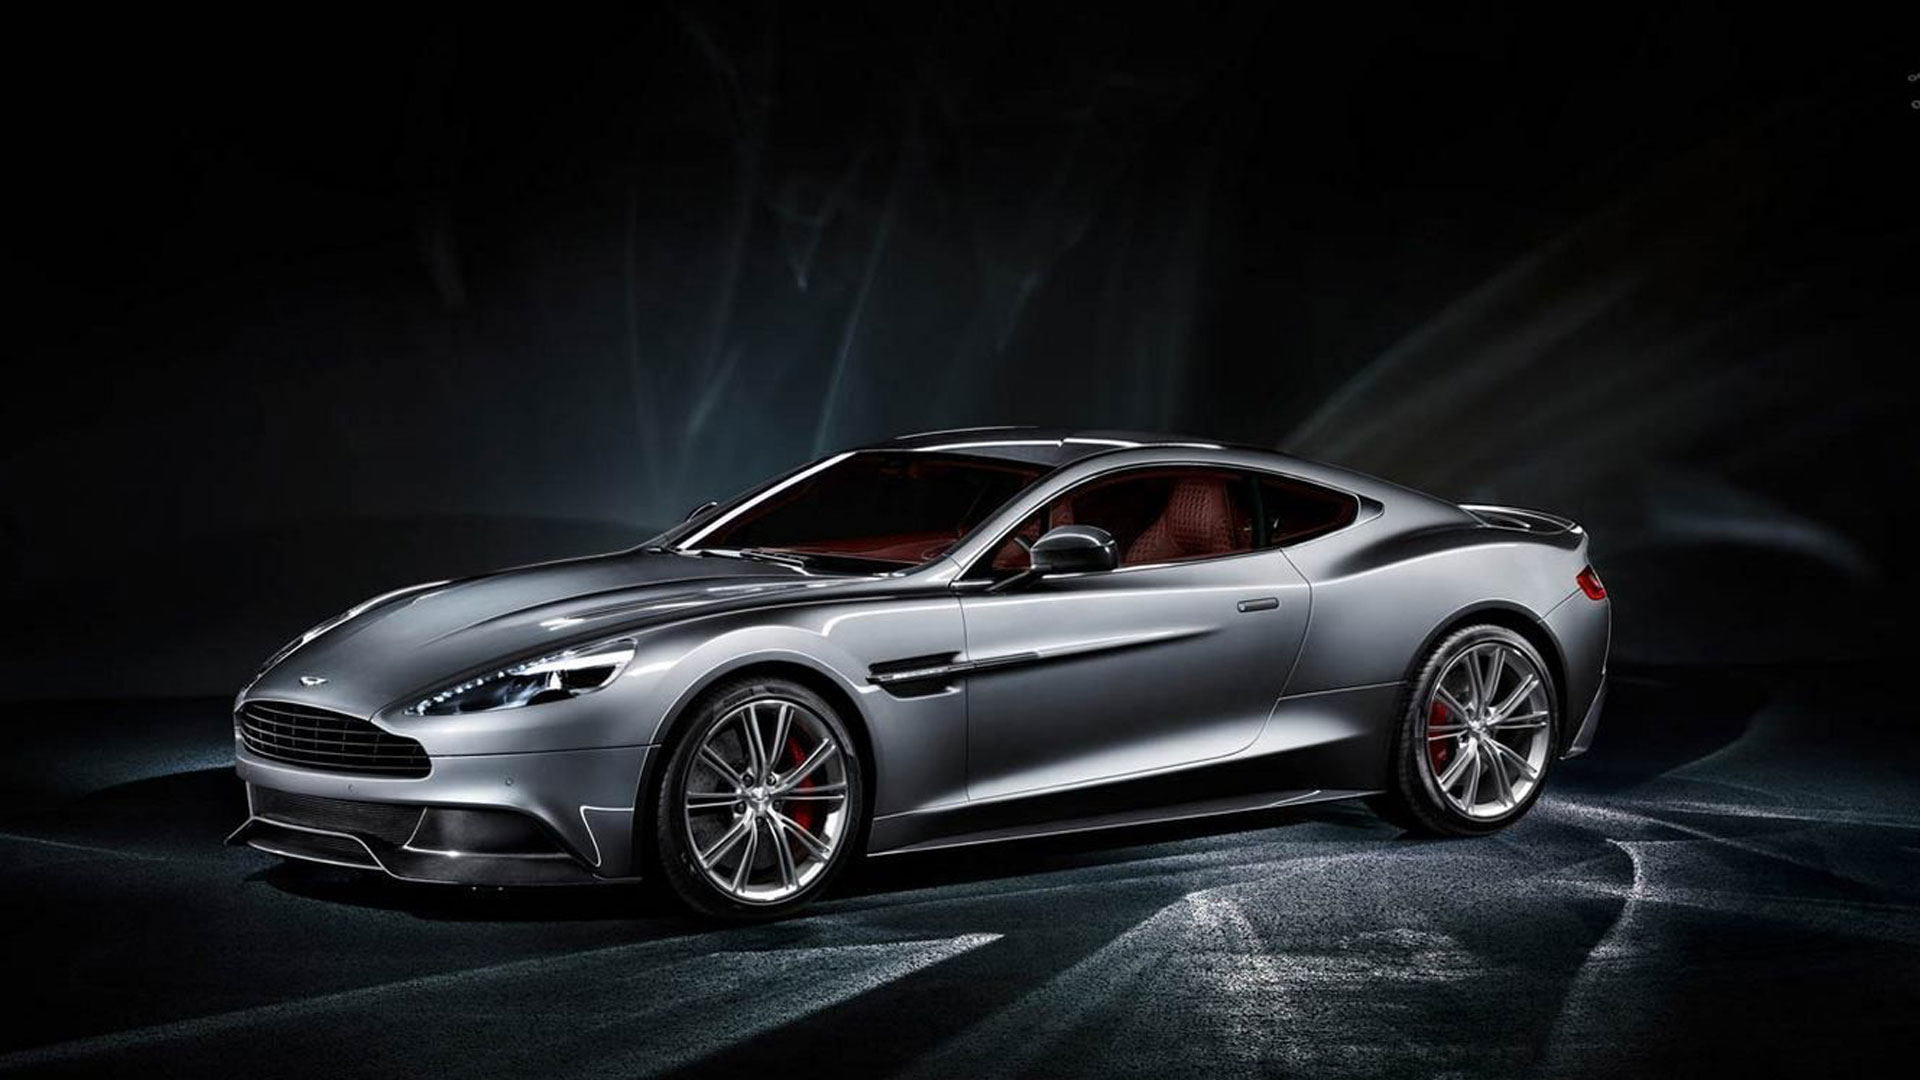 2014 HD Aston Martin Vanquish Wallpaper   HD 1920x1080